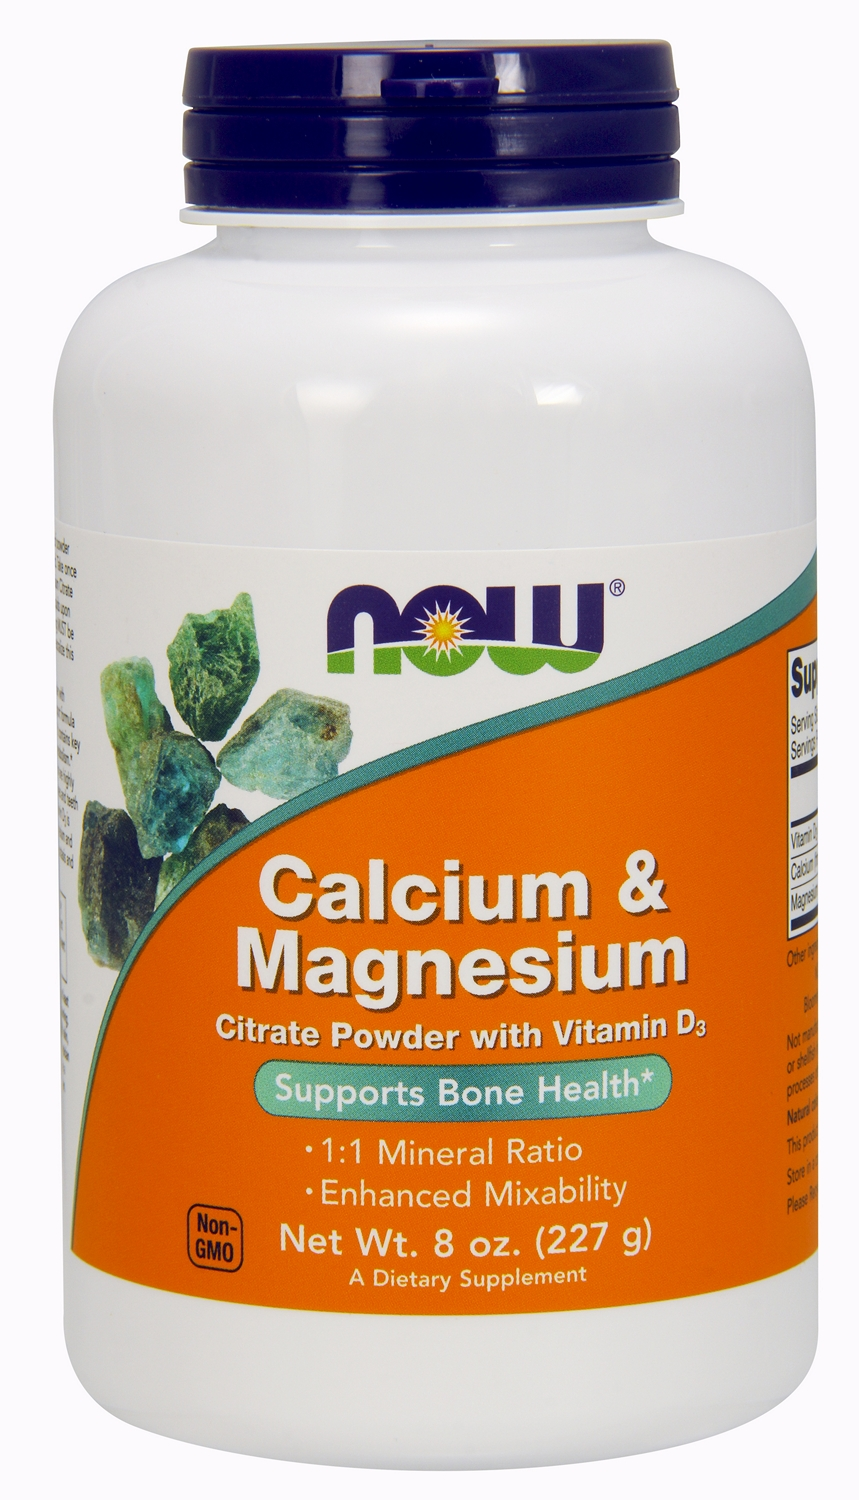 Calcium & Magnesium Citrate Powder 8 oz (227 g) by NOW